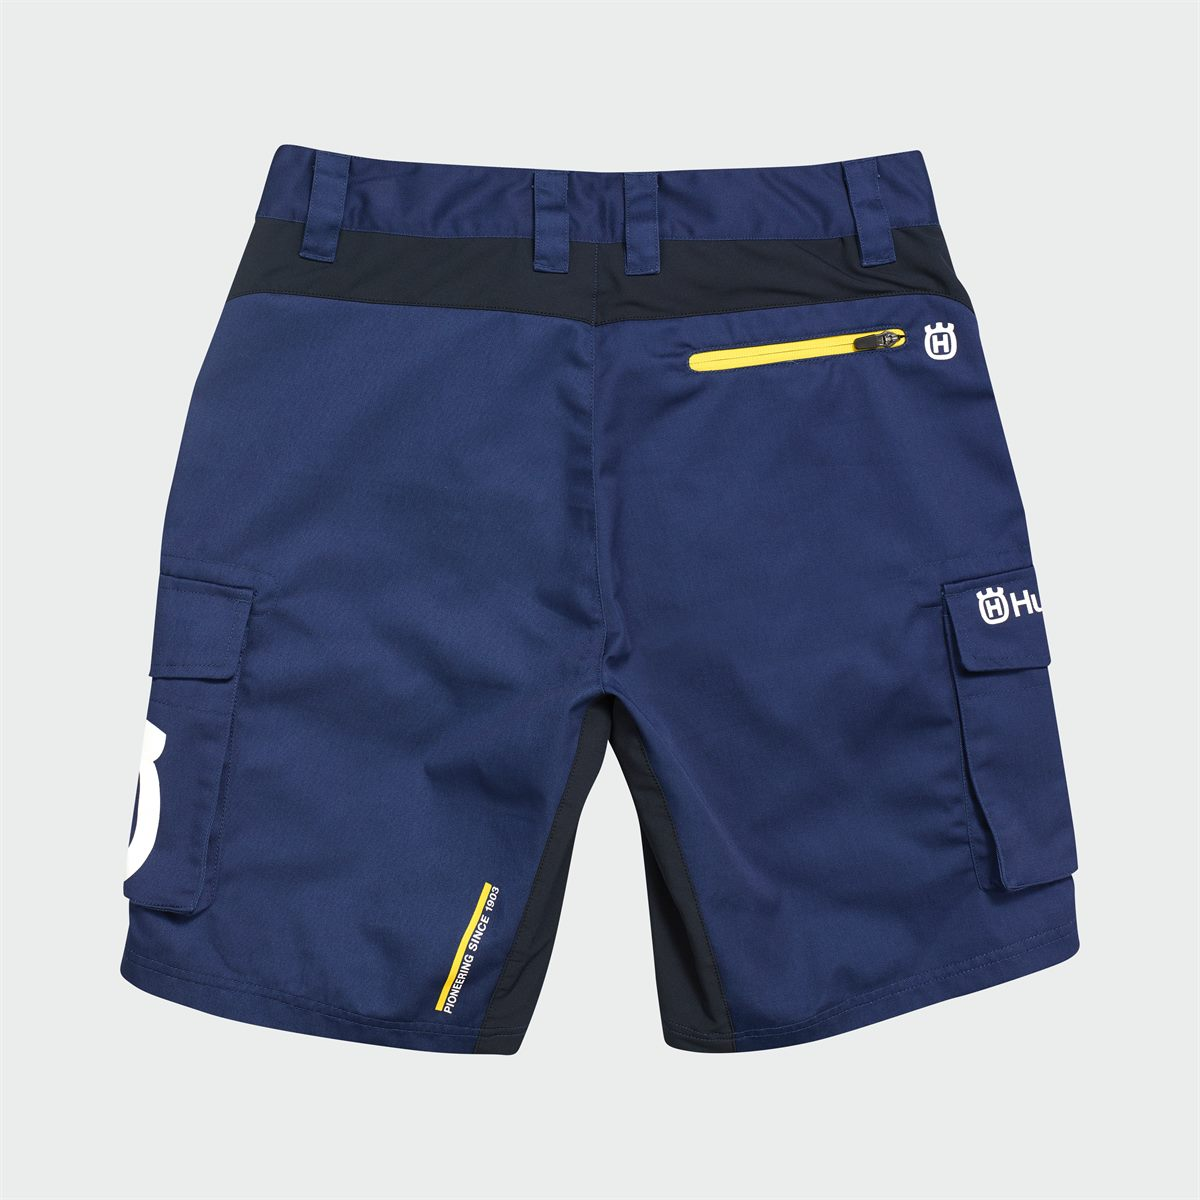 2019 HUSQVARNA REPLICA TEAM WEAR - REPLICA TEAM SHORTS BACK